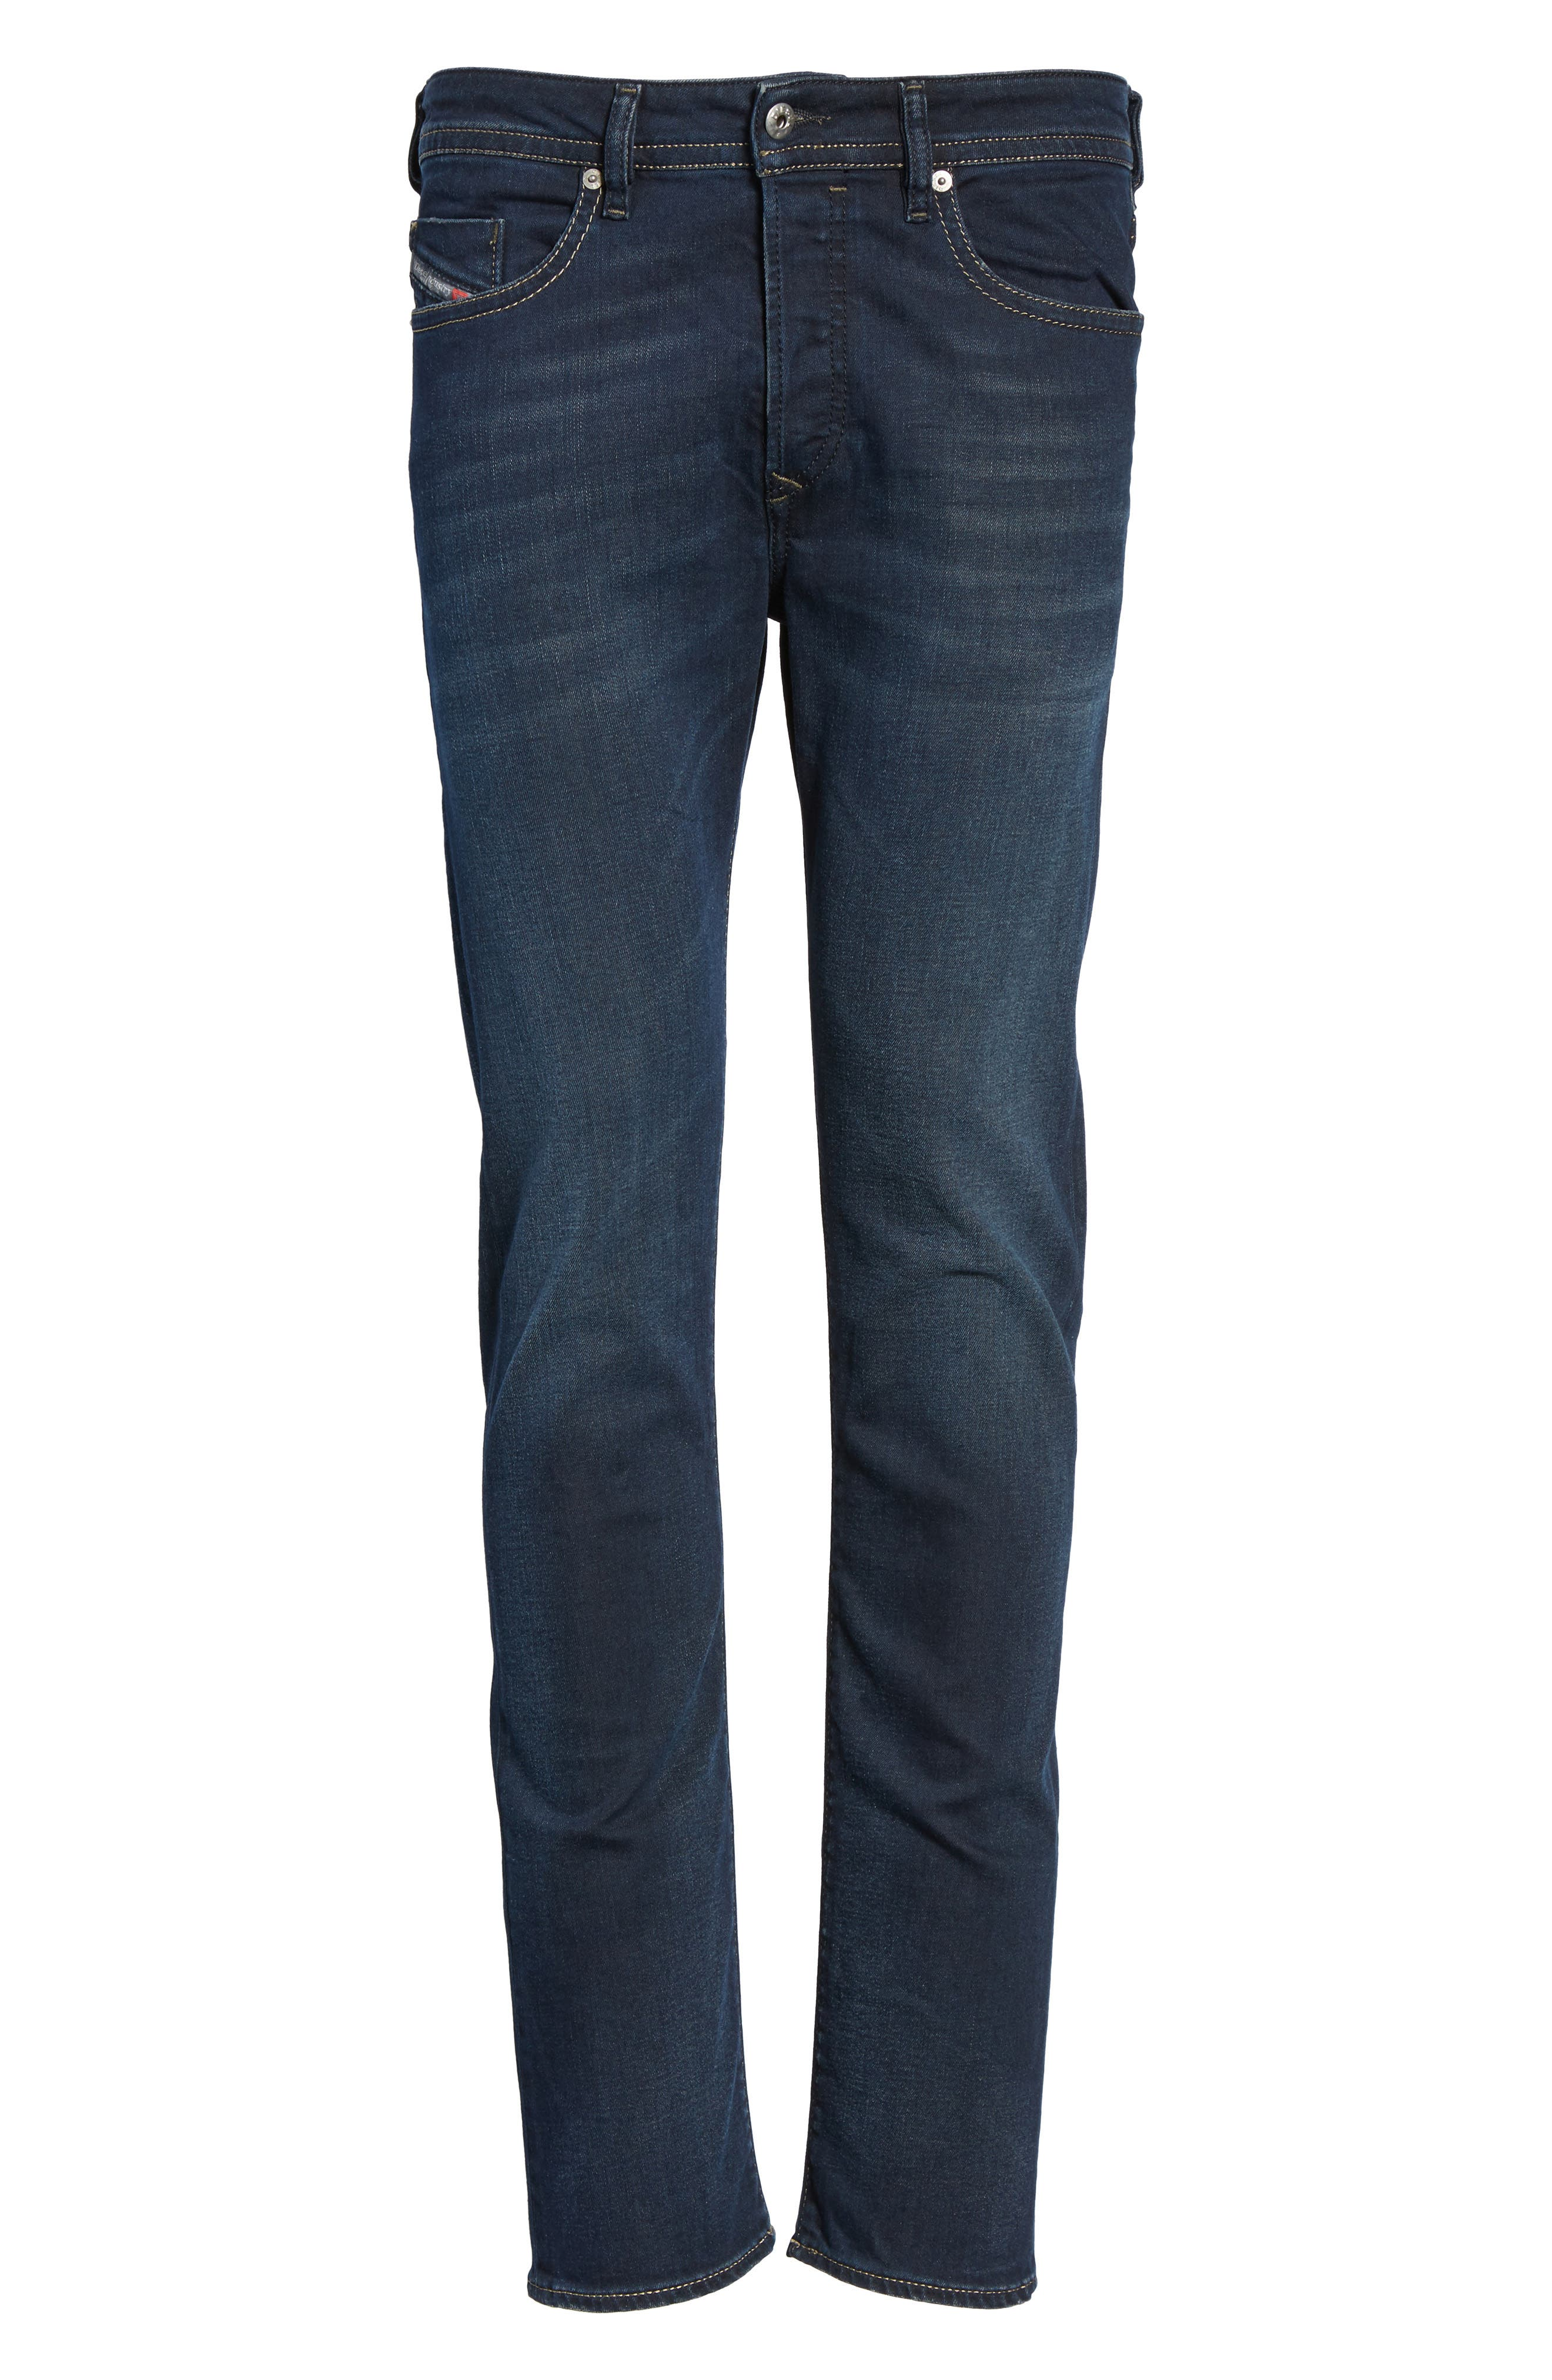 Buster Slim Straight Fit Jeans,                             Alternate thumbnail 6, color,